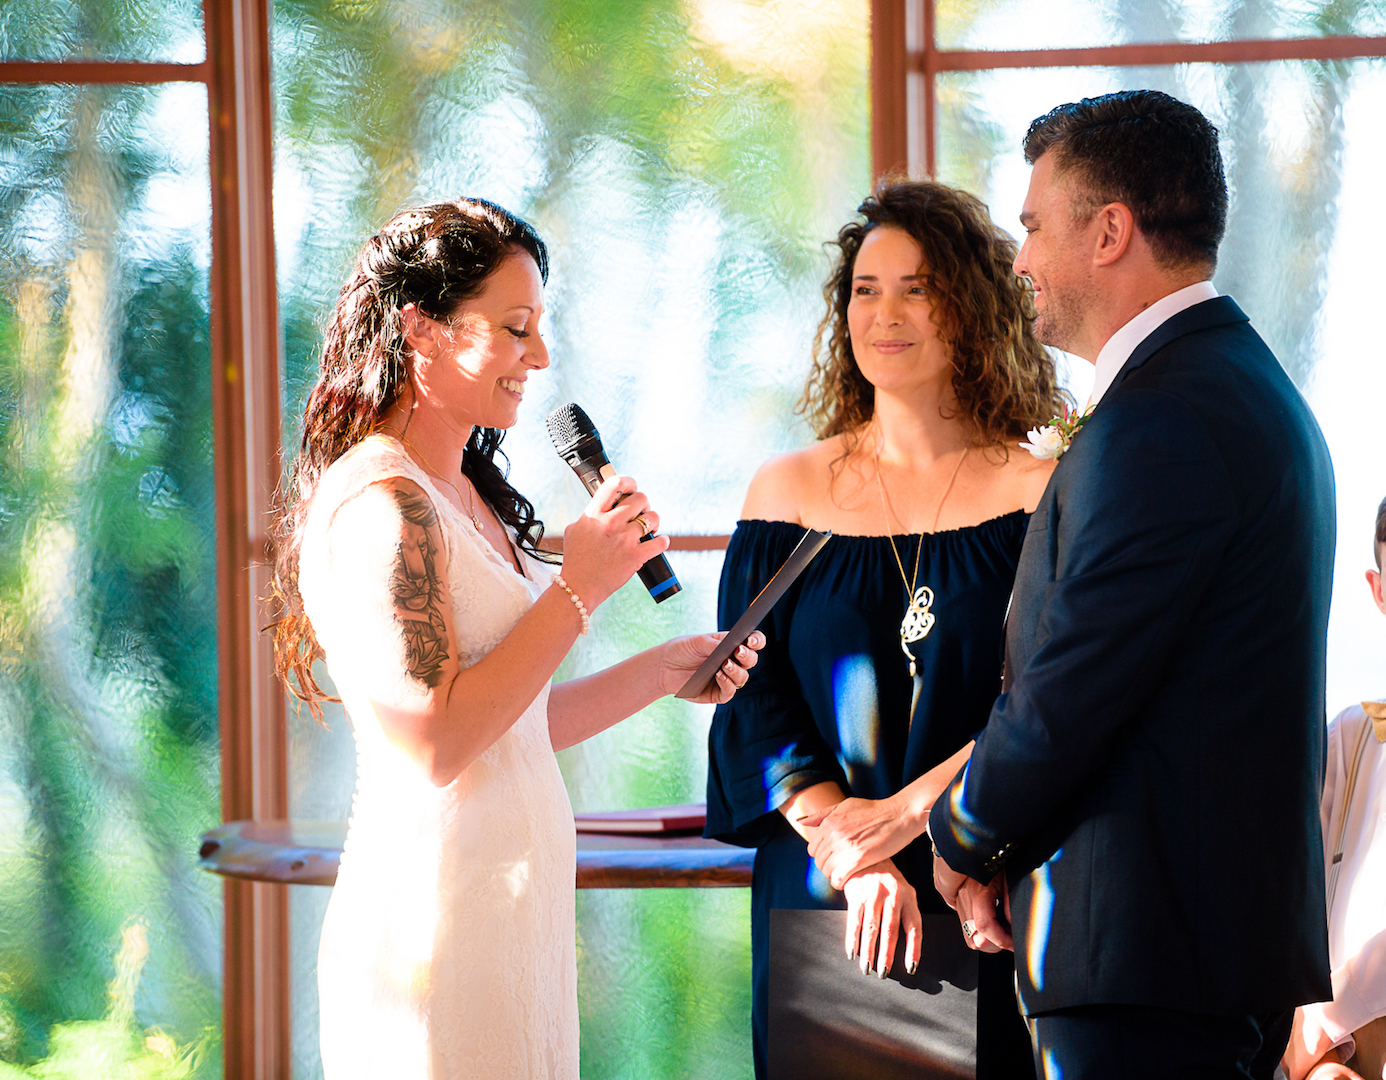 hi-res-kirk-and-treens-with-owl-suzanne-riley-marriage-celebrant2-copy-2